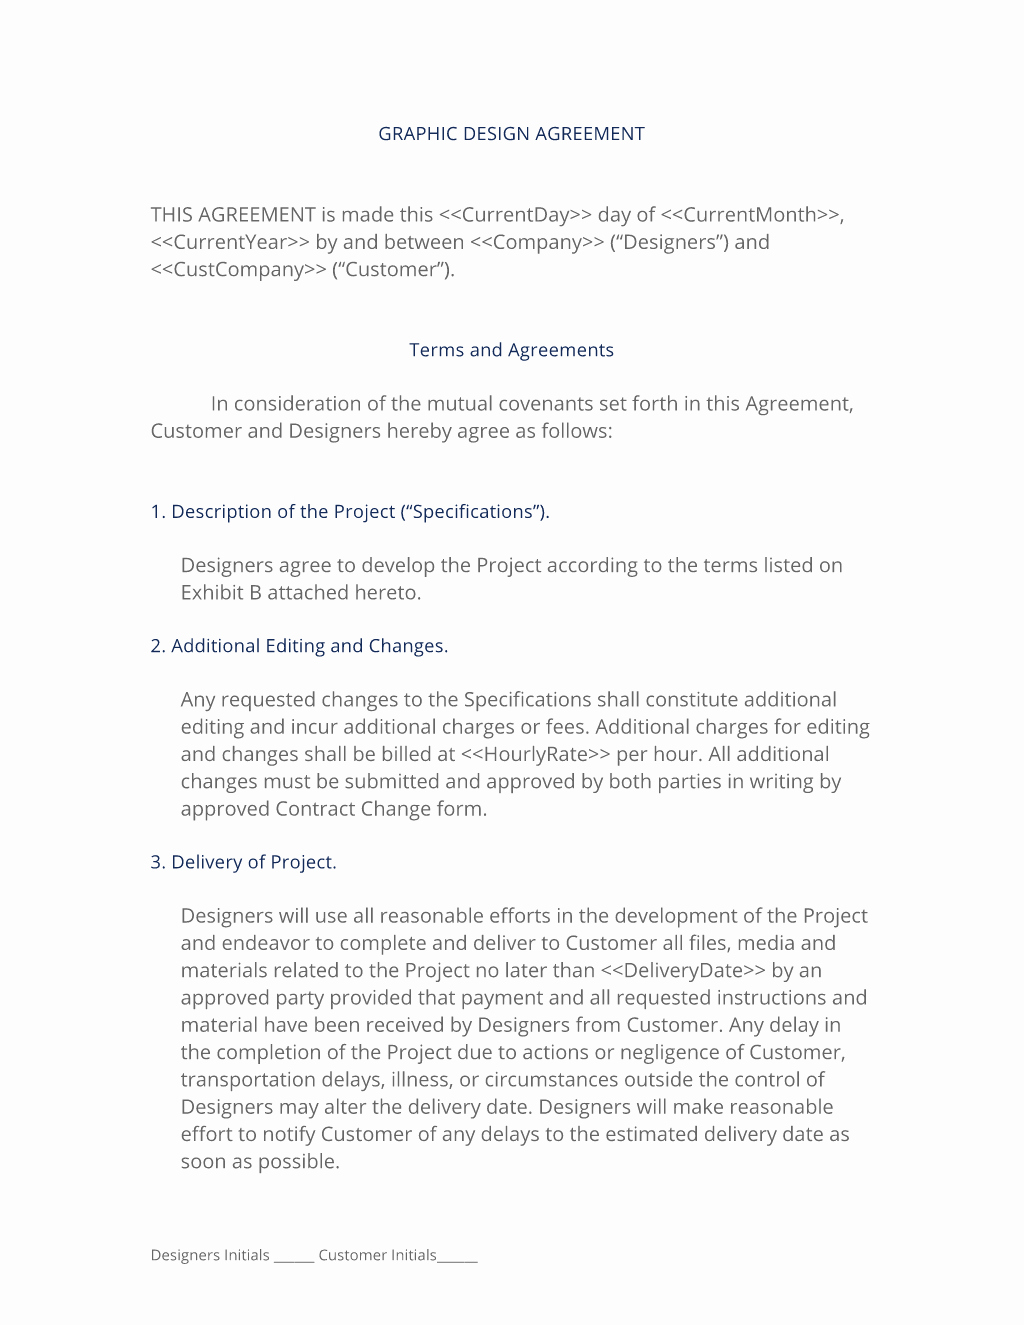 Graphic Design Contract Template Luxury Graphic Design Contract 3 Easy Steps